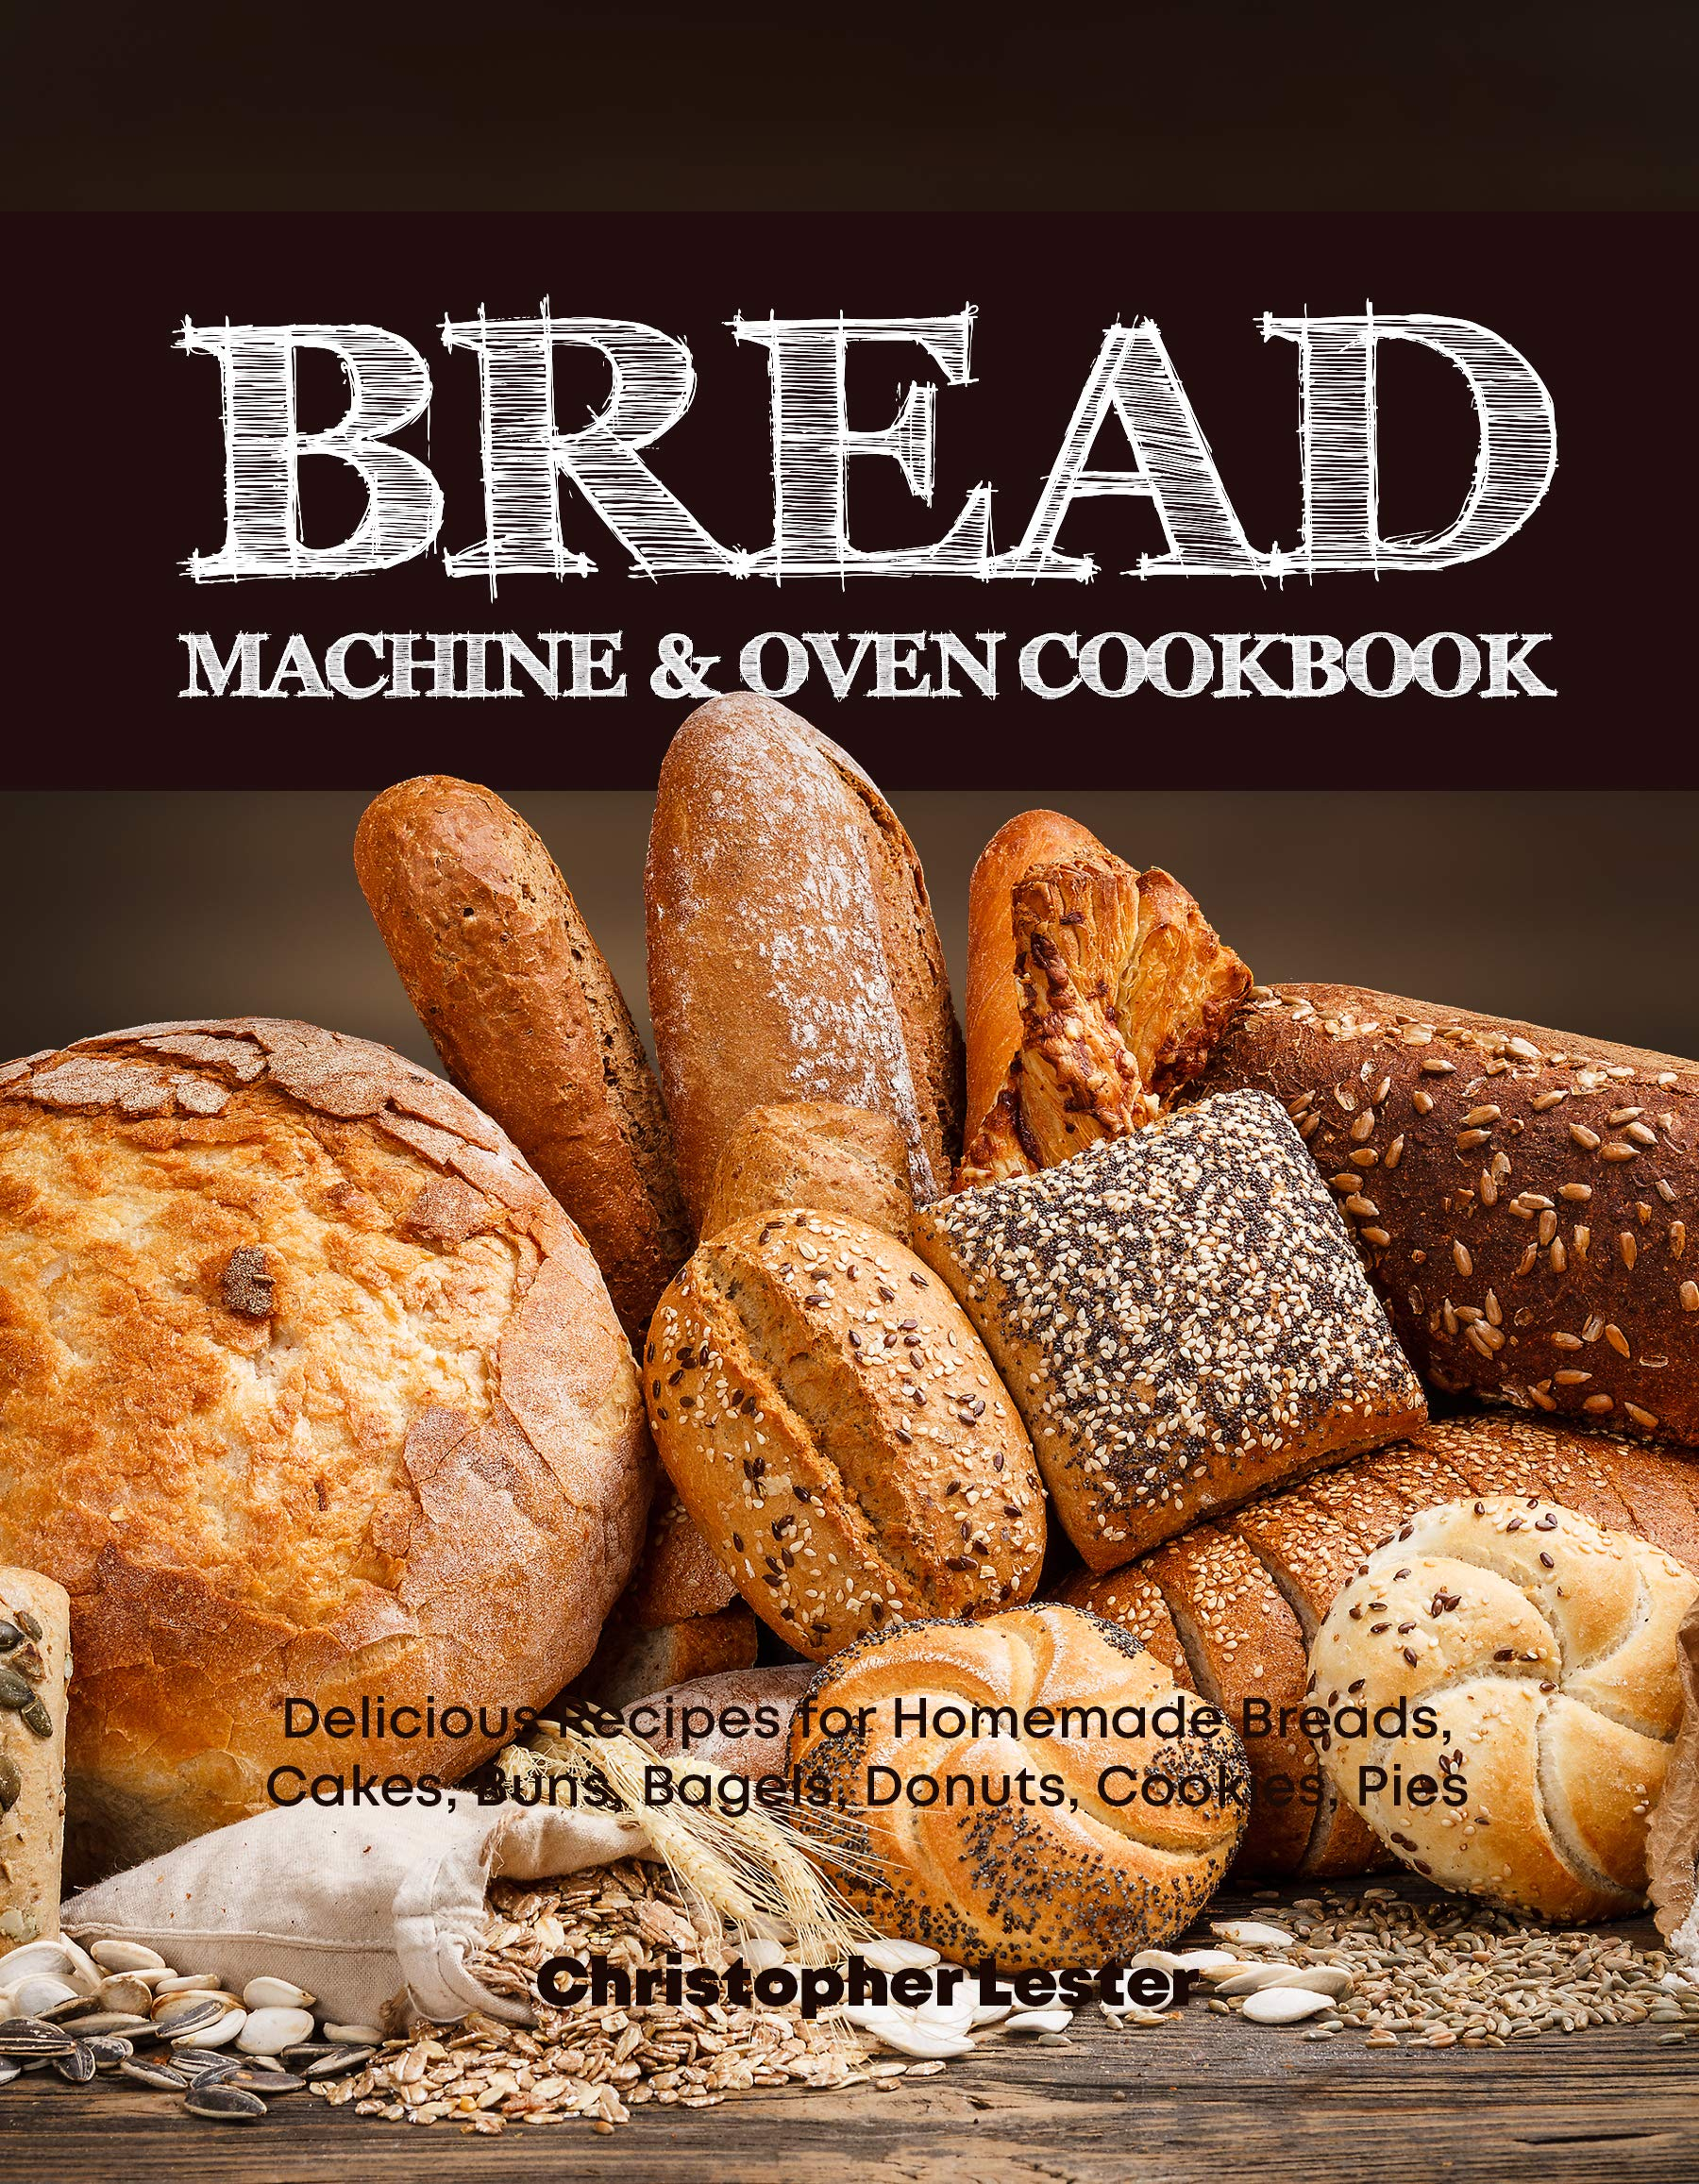 Bread Machine & Oven Cookbook: Delicious Bread Machine Recipes for Homemade Breads, Cakes, Buns, Bagels, Donuts, Cookies, Pies, Tarts